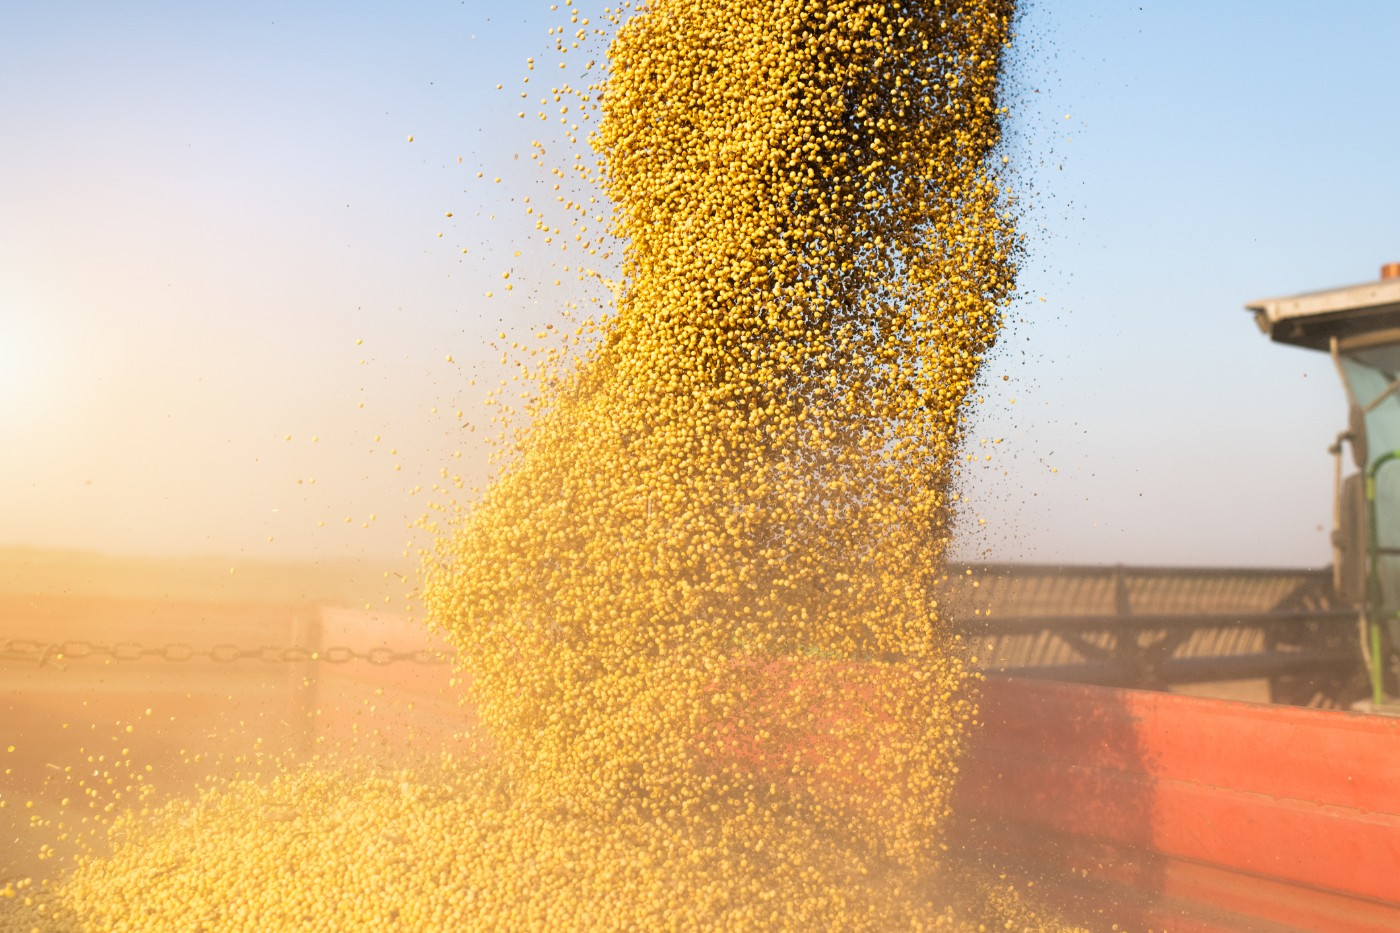 https://tickertapecdn.tdameritrade.com/assets/images/pages/md/Grain harvest: Tax-loss harvesting